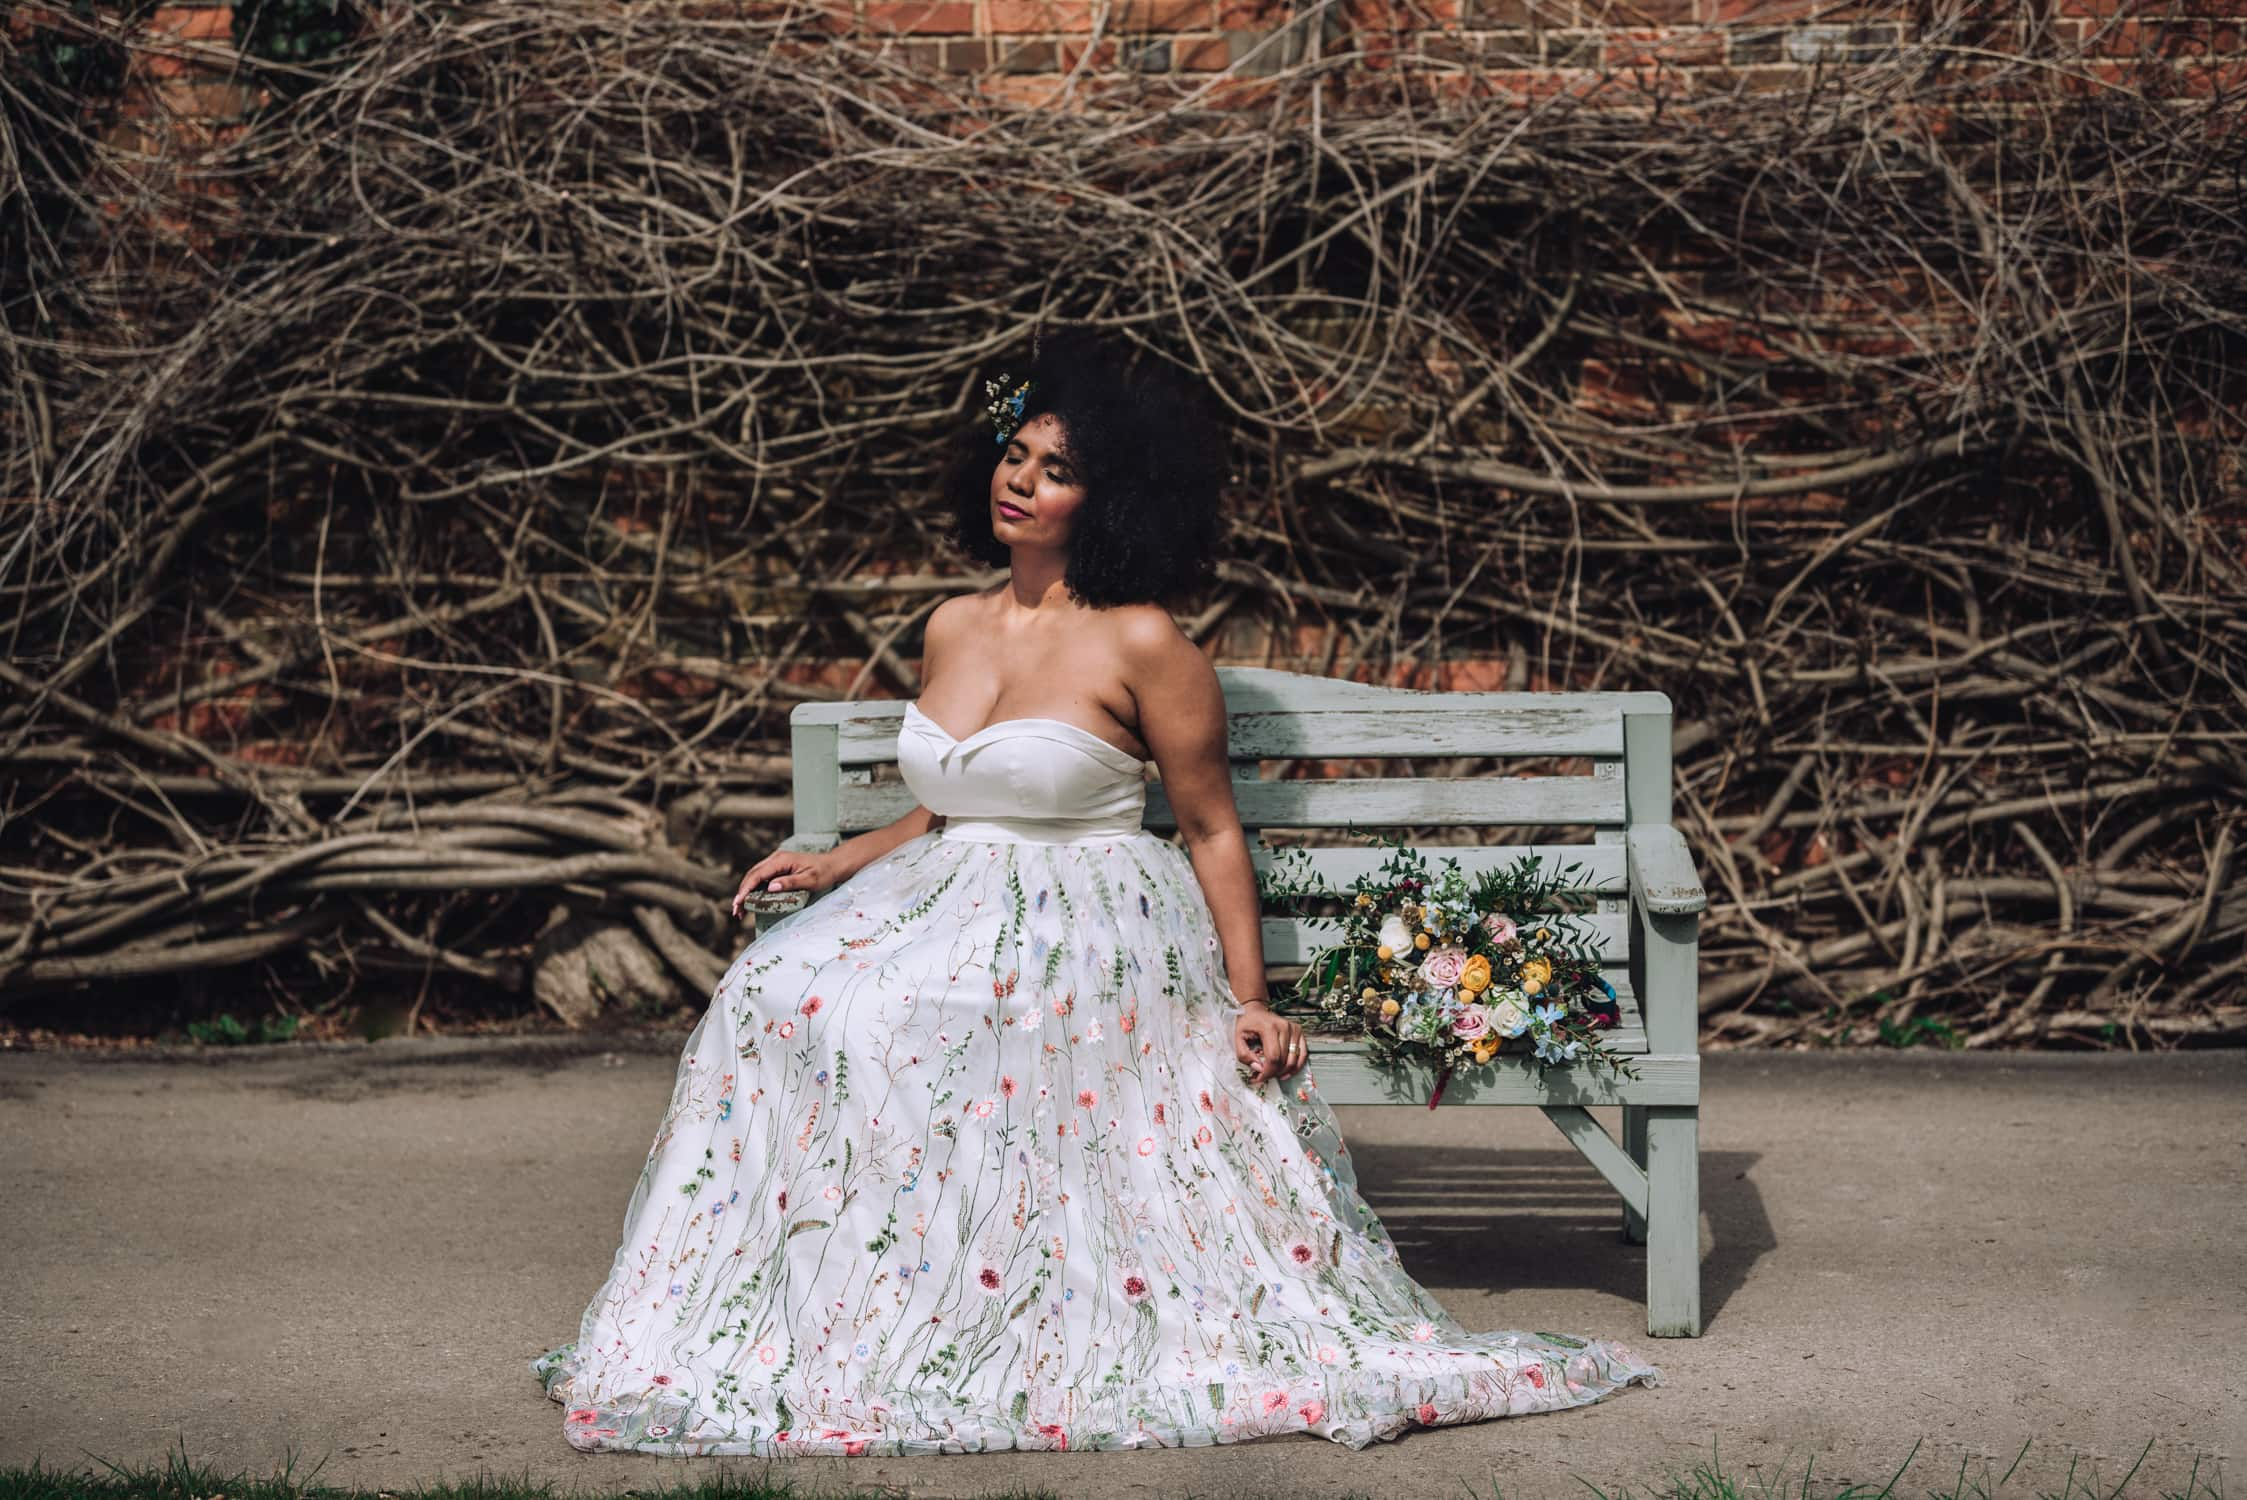 Black Bride in a white wedding dress with a floral pattern